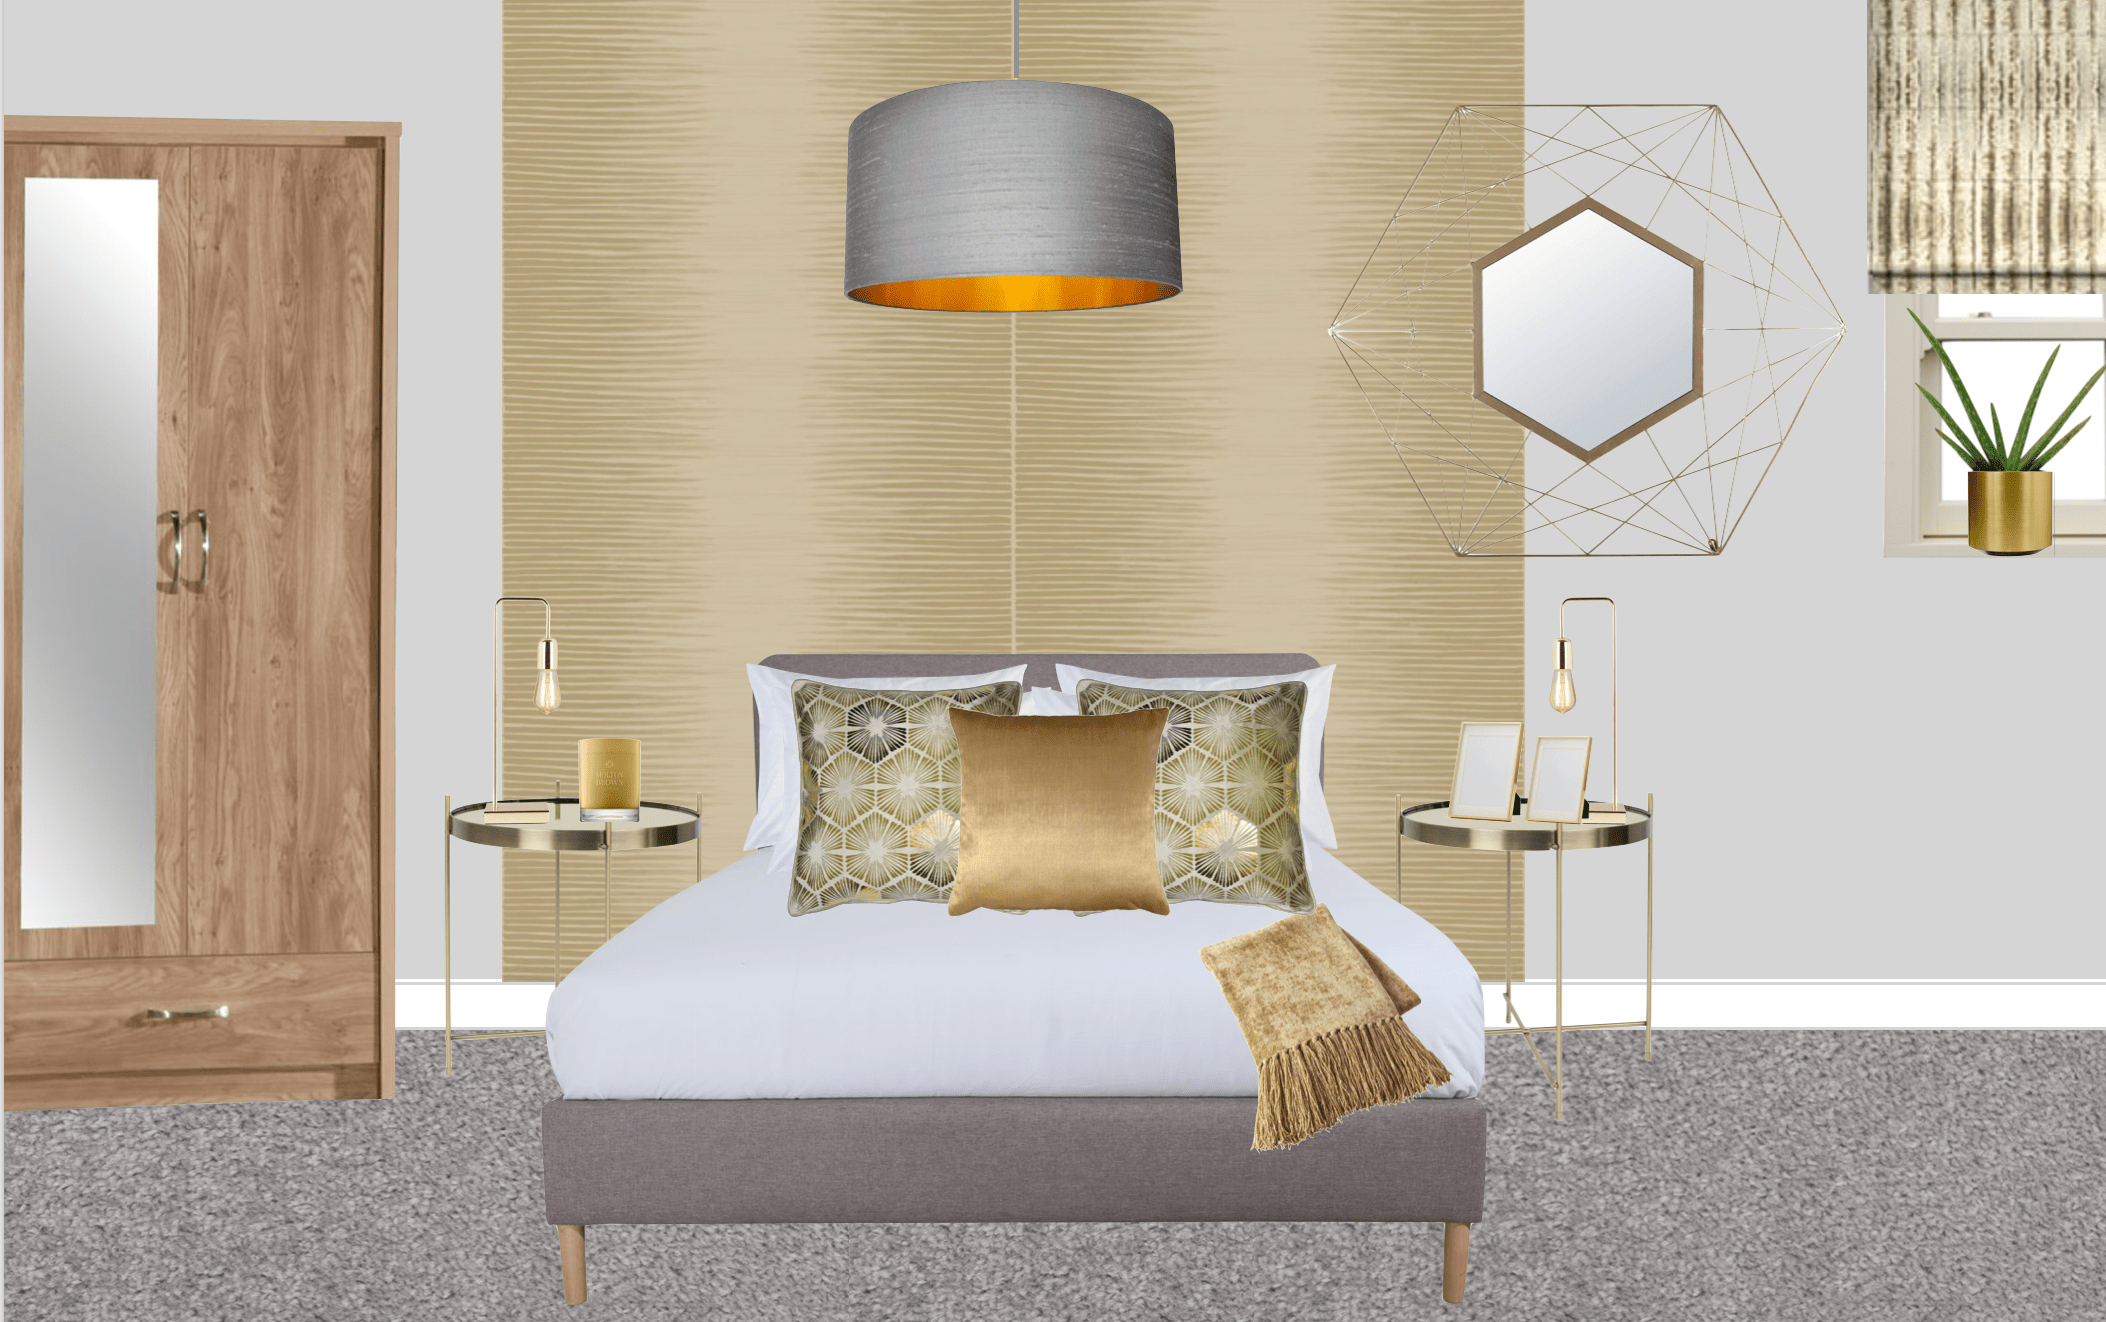 Gold and grey bedroom moodboard for show home design